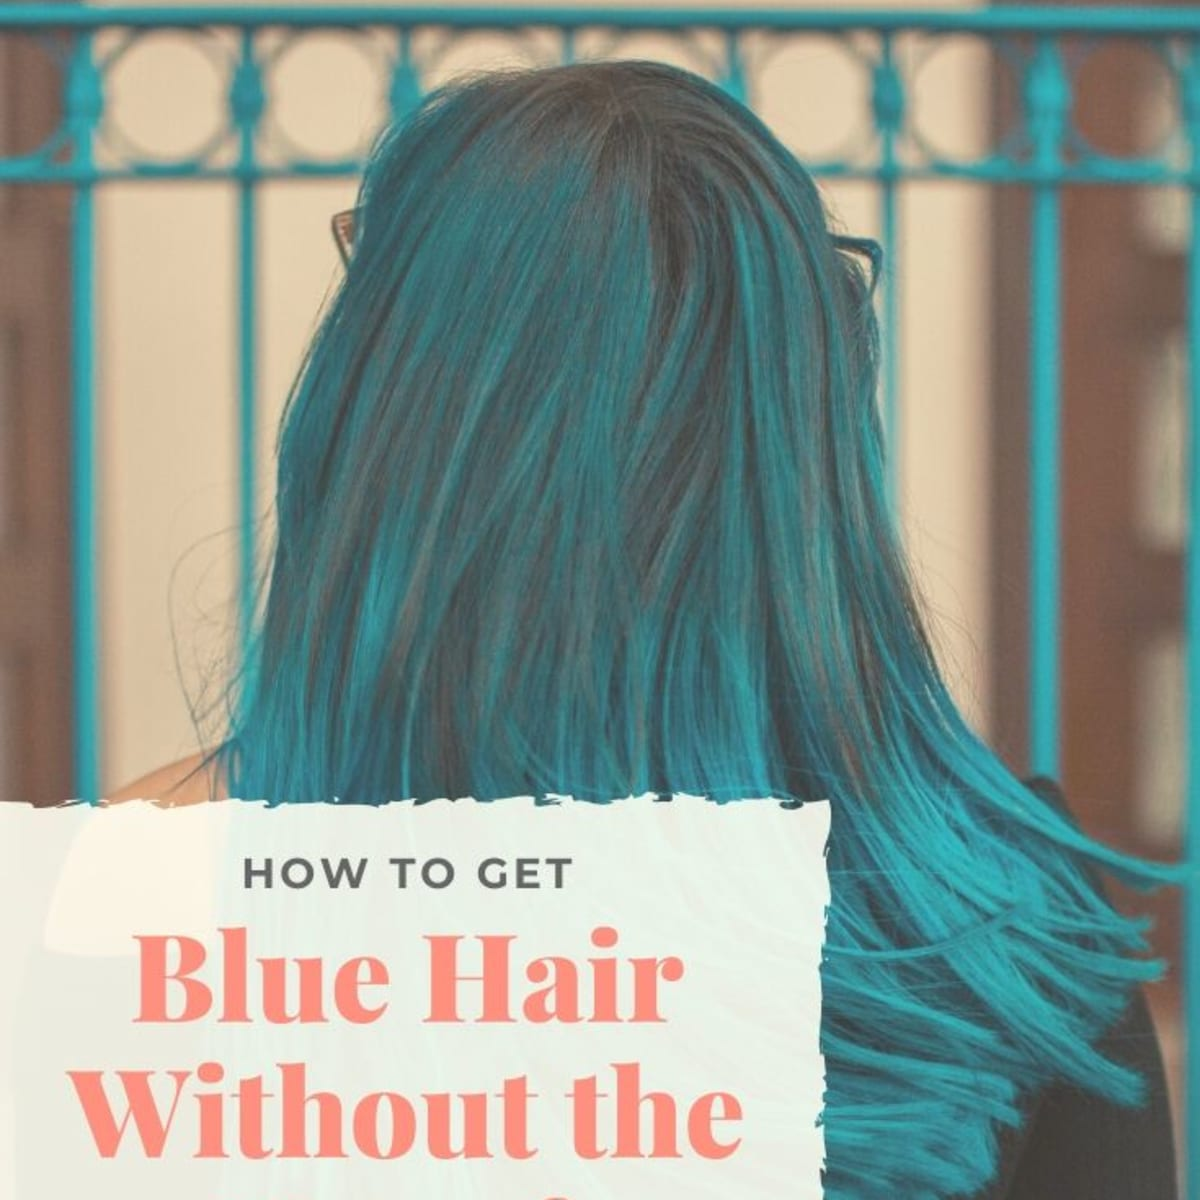 How To Dye Your Hair Blue At Home Without Chemical Dyes Bellatory